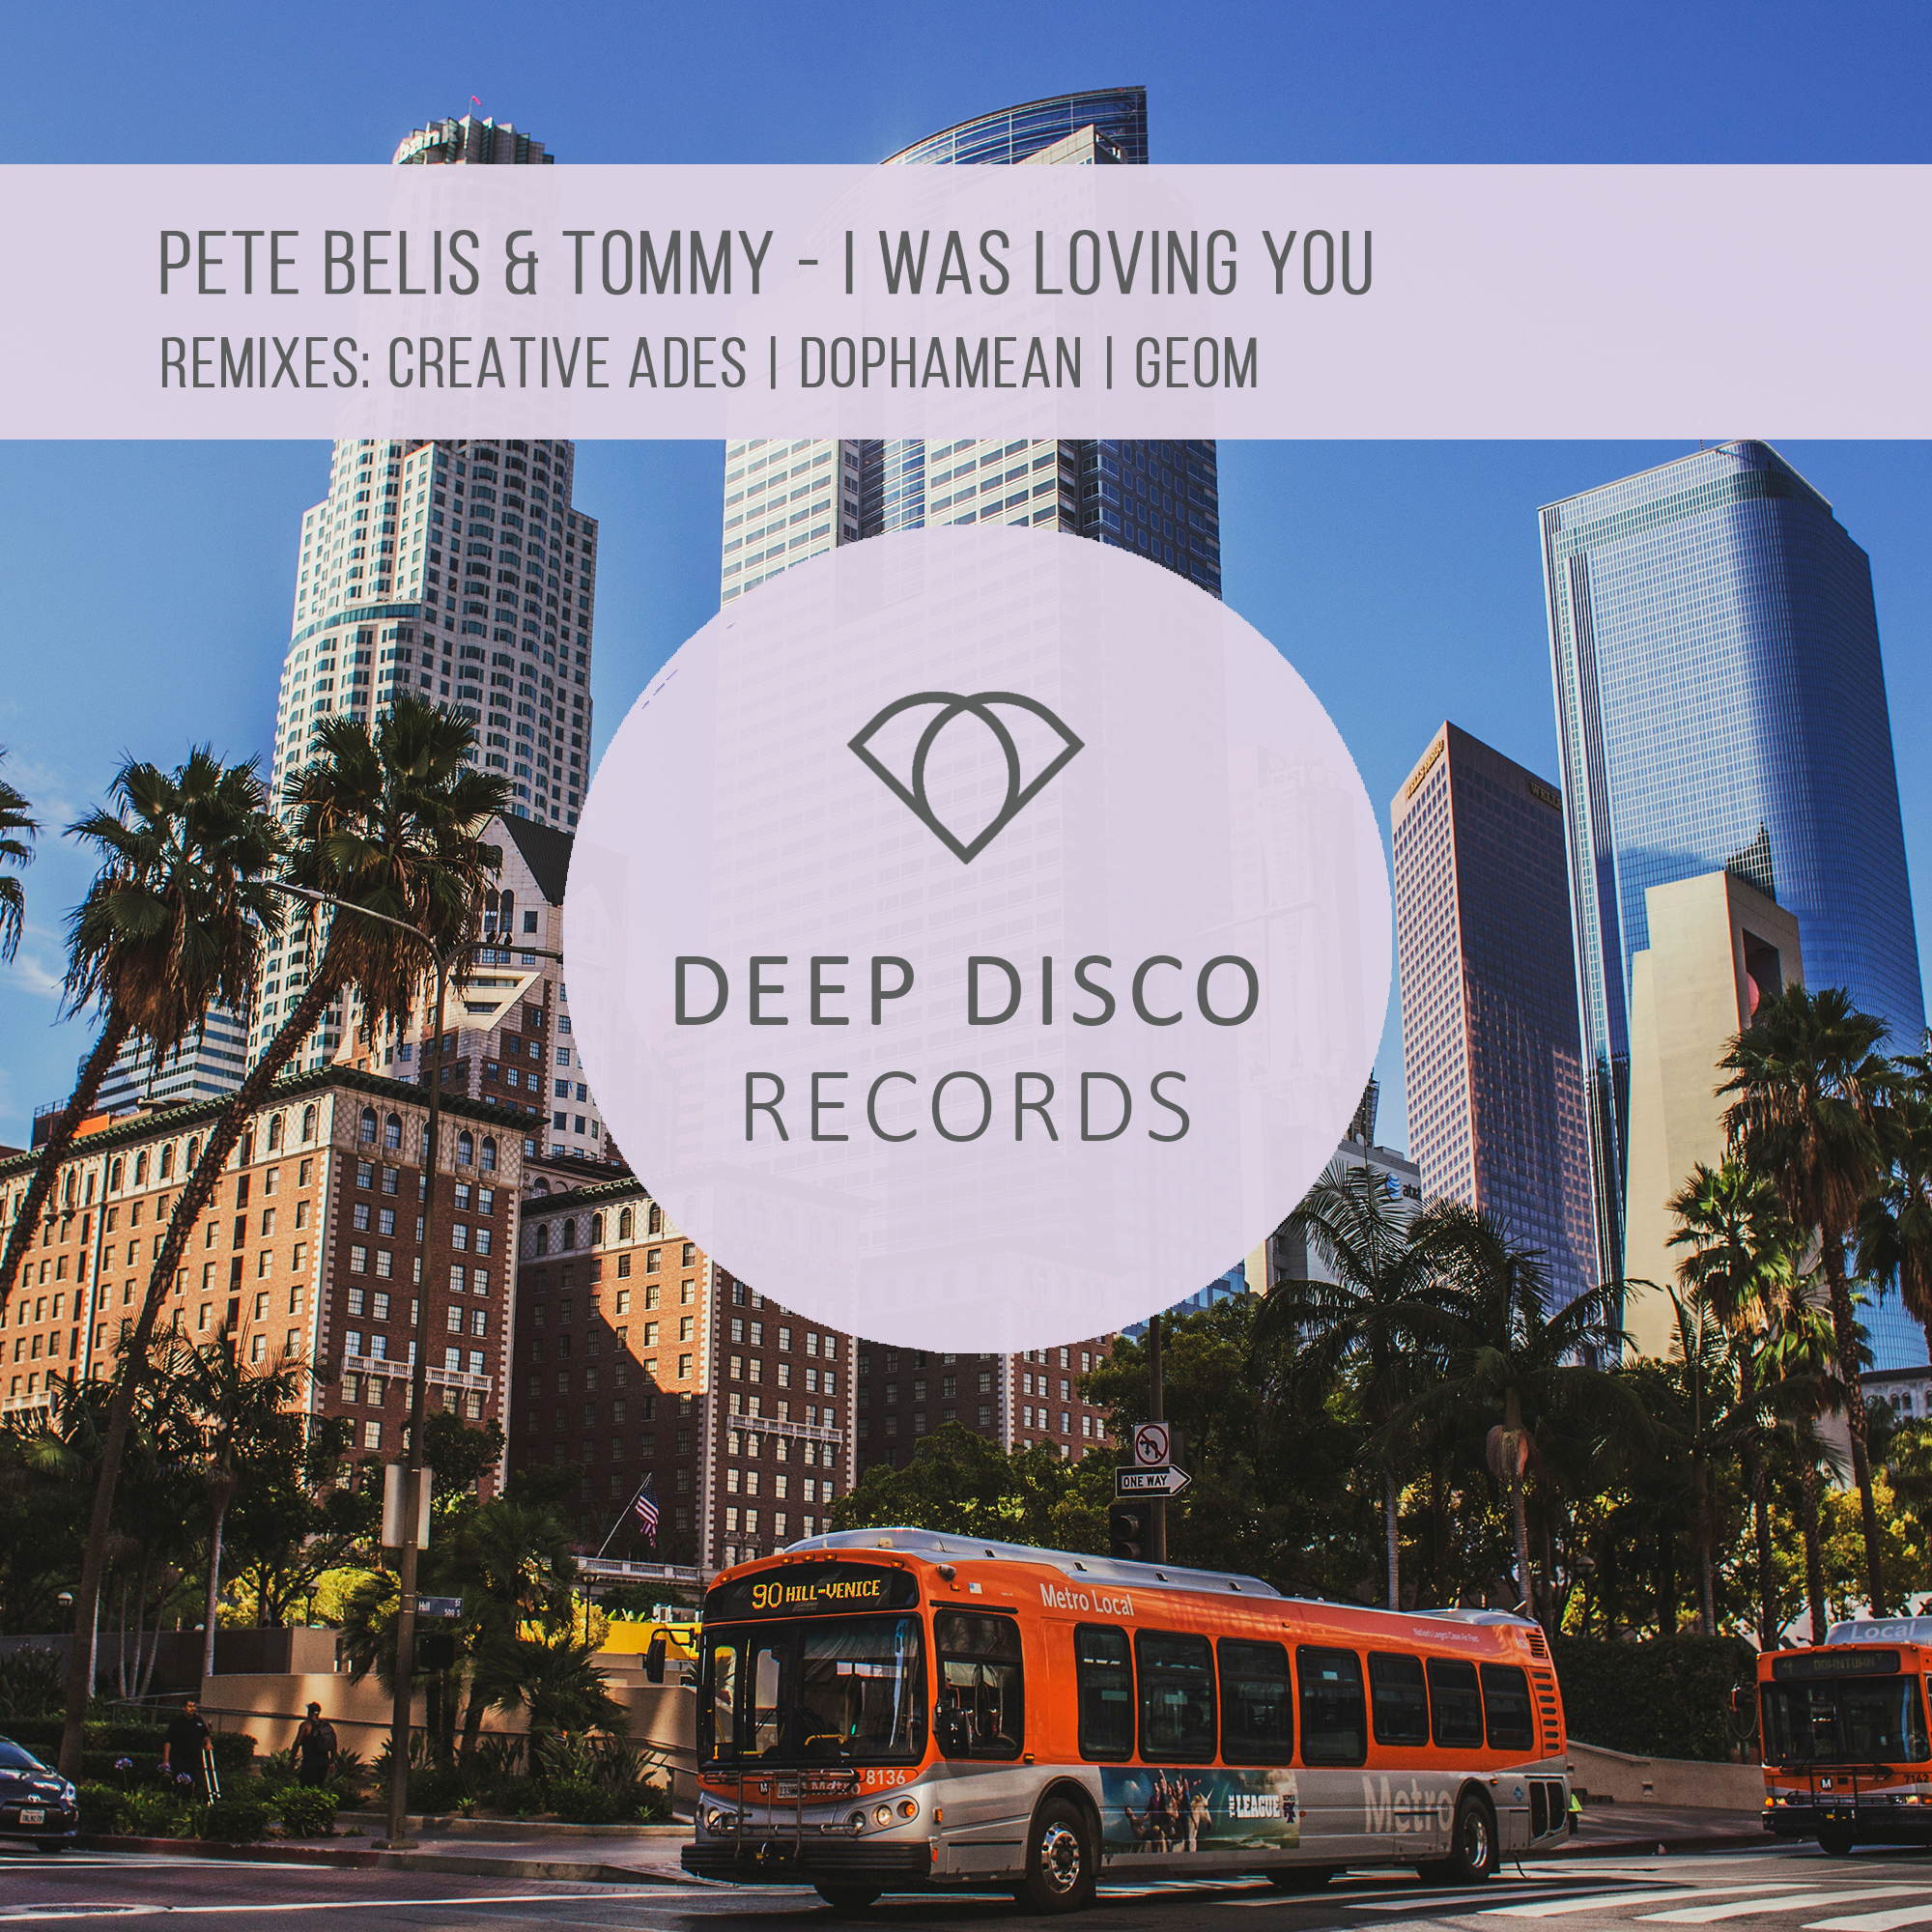 Pete Bellis & Tommy - I Was Loving You